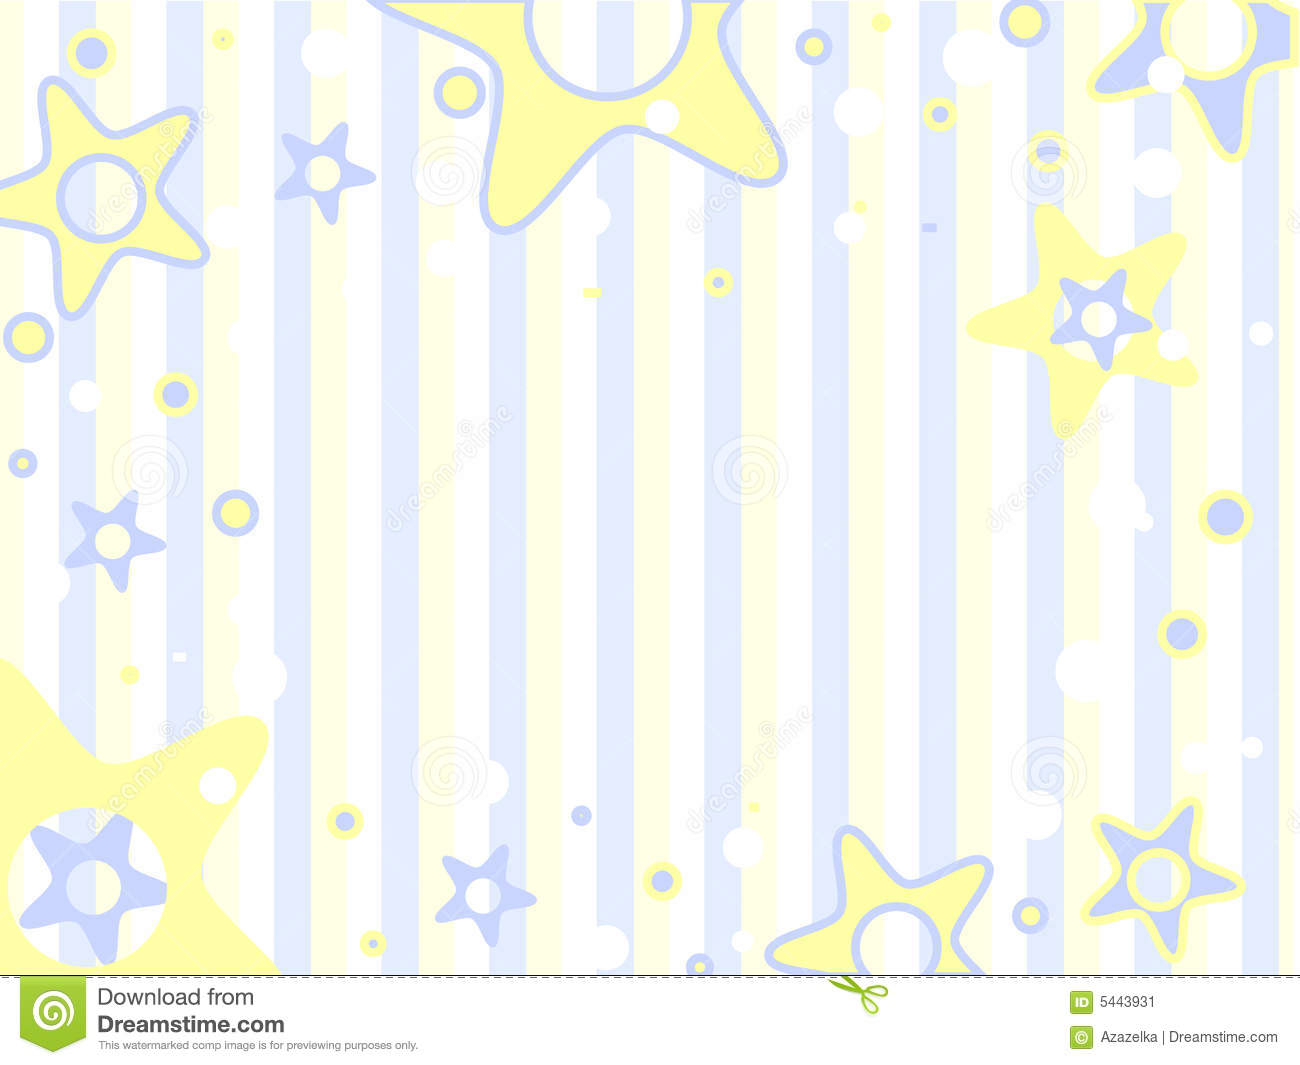 Blue and yellow stars on a trips background  Vector background Unisex Baby Backgrounds